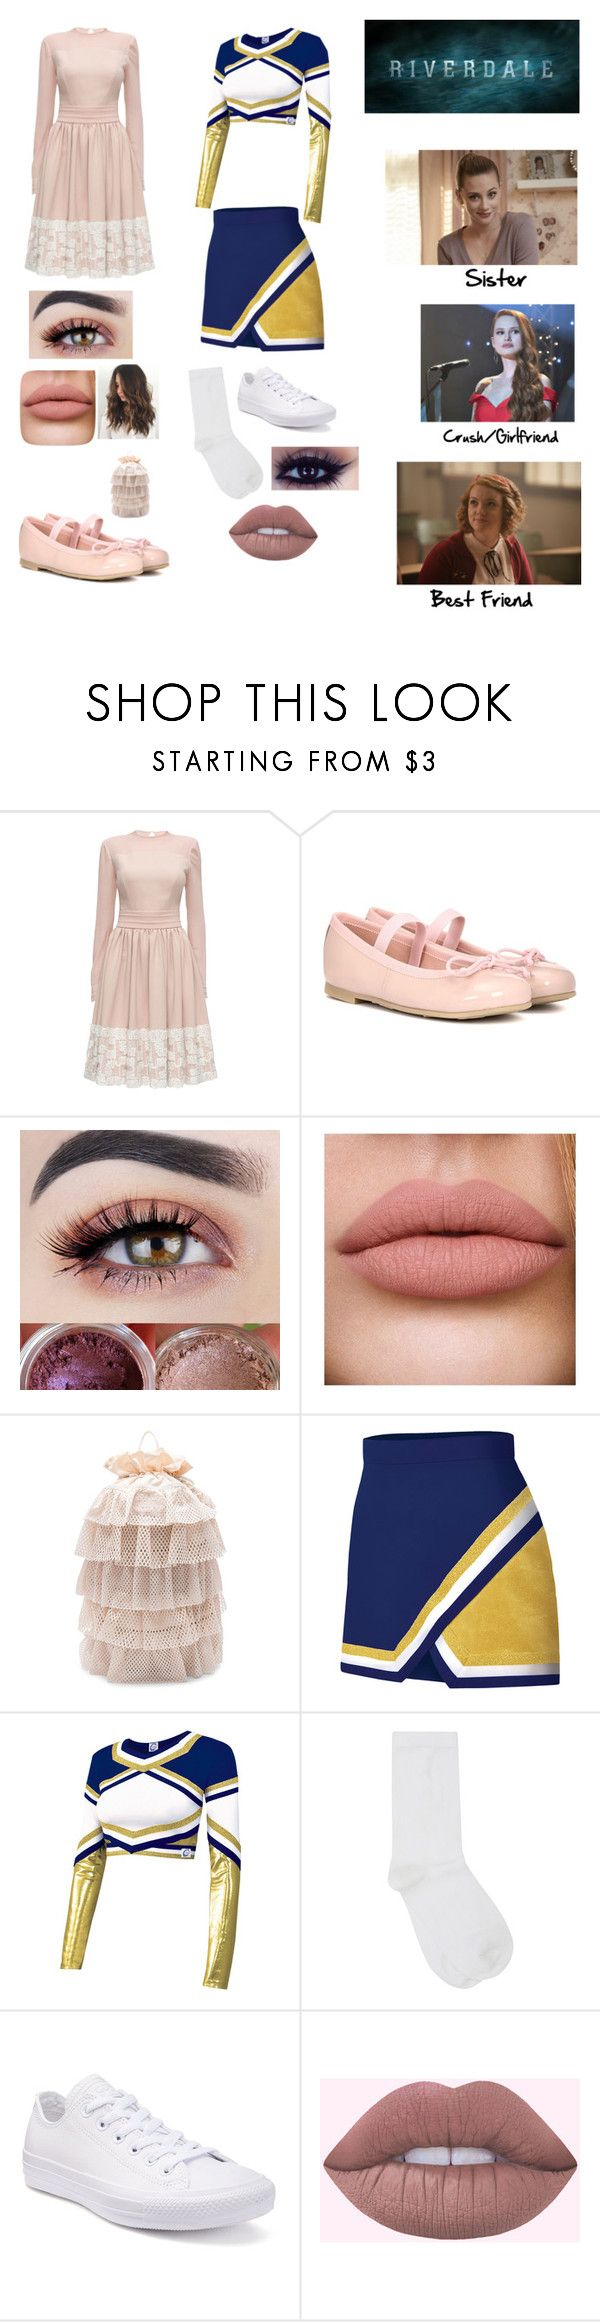 """""""#2 Riverdale OC Kelly Cooper"""" by fangirlgaming36 ❤ liked on Polyvore featuring Lattori, Pretty Ballerinas, Puma, Chassè, M&Co and Converse"""